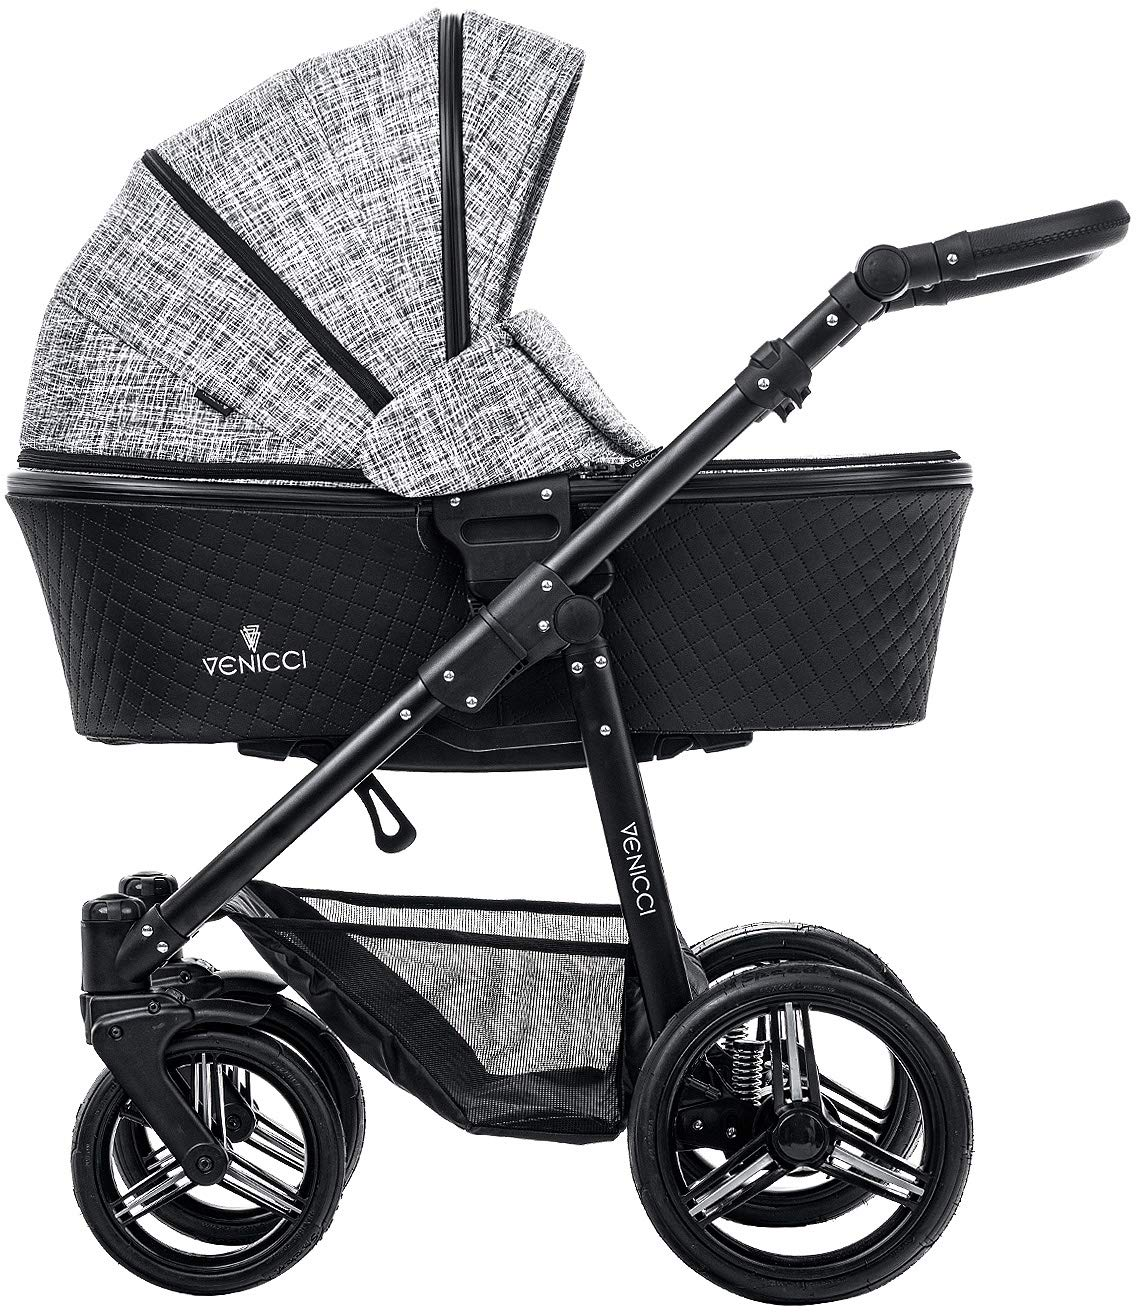 Venicci Shadow 2-in-1 - Fashion Black Travel System Venicci Also includes: Changing bag, Apron, Rain cover, Mosquito Net, Cup holder Carrycot: L 102cm W 61cm H 112 cm Age suitability: From birth to 6 months Seat unit: L 95cm W 61cm H 112cm Age suitability: From 7 to 36 months 1